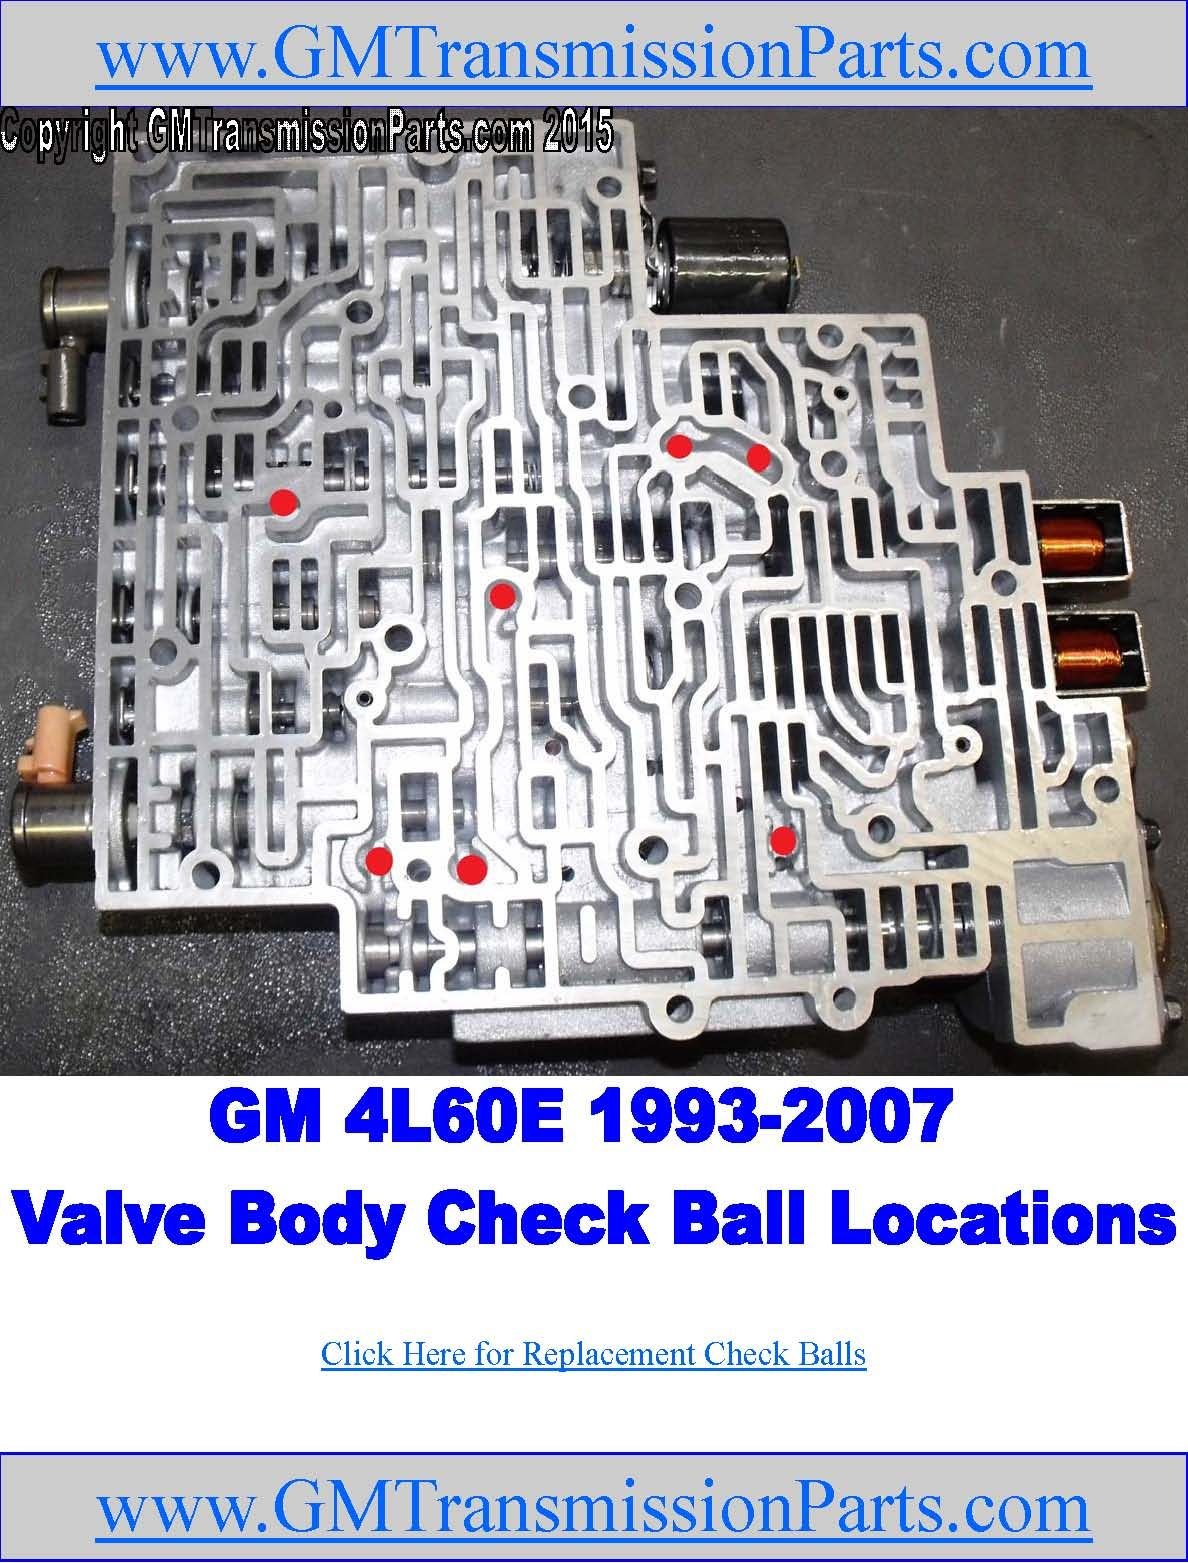 check ball locations in gm s 4l60e transmission valve bodies there are a total of 7 check balls used in valve bodies 1993 2007 get replacement balls from  [ 1188 x 1563 Pixel ]